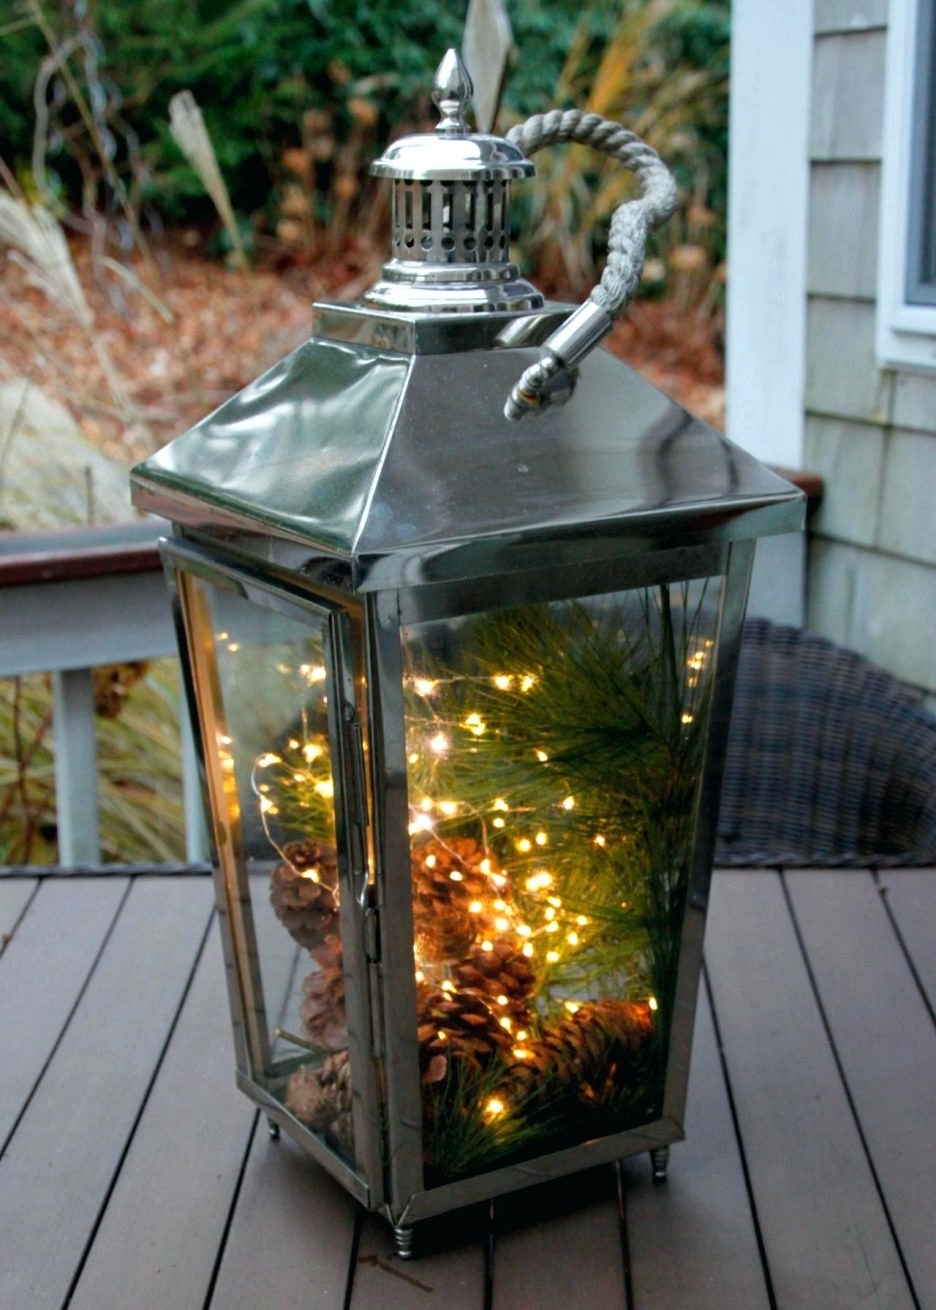 Preferred Outdoor Hanging Gazebo Lights Pertaining To Chandeliers Design : Marvelous Outdoor Gazebo Lighting Chandelier (View 17 of 20)